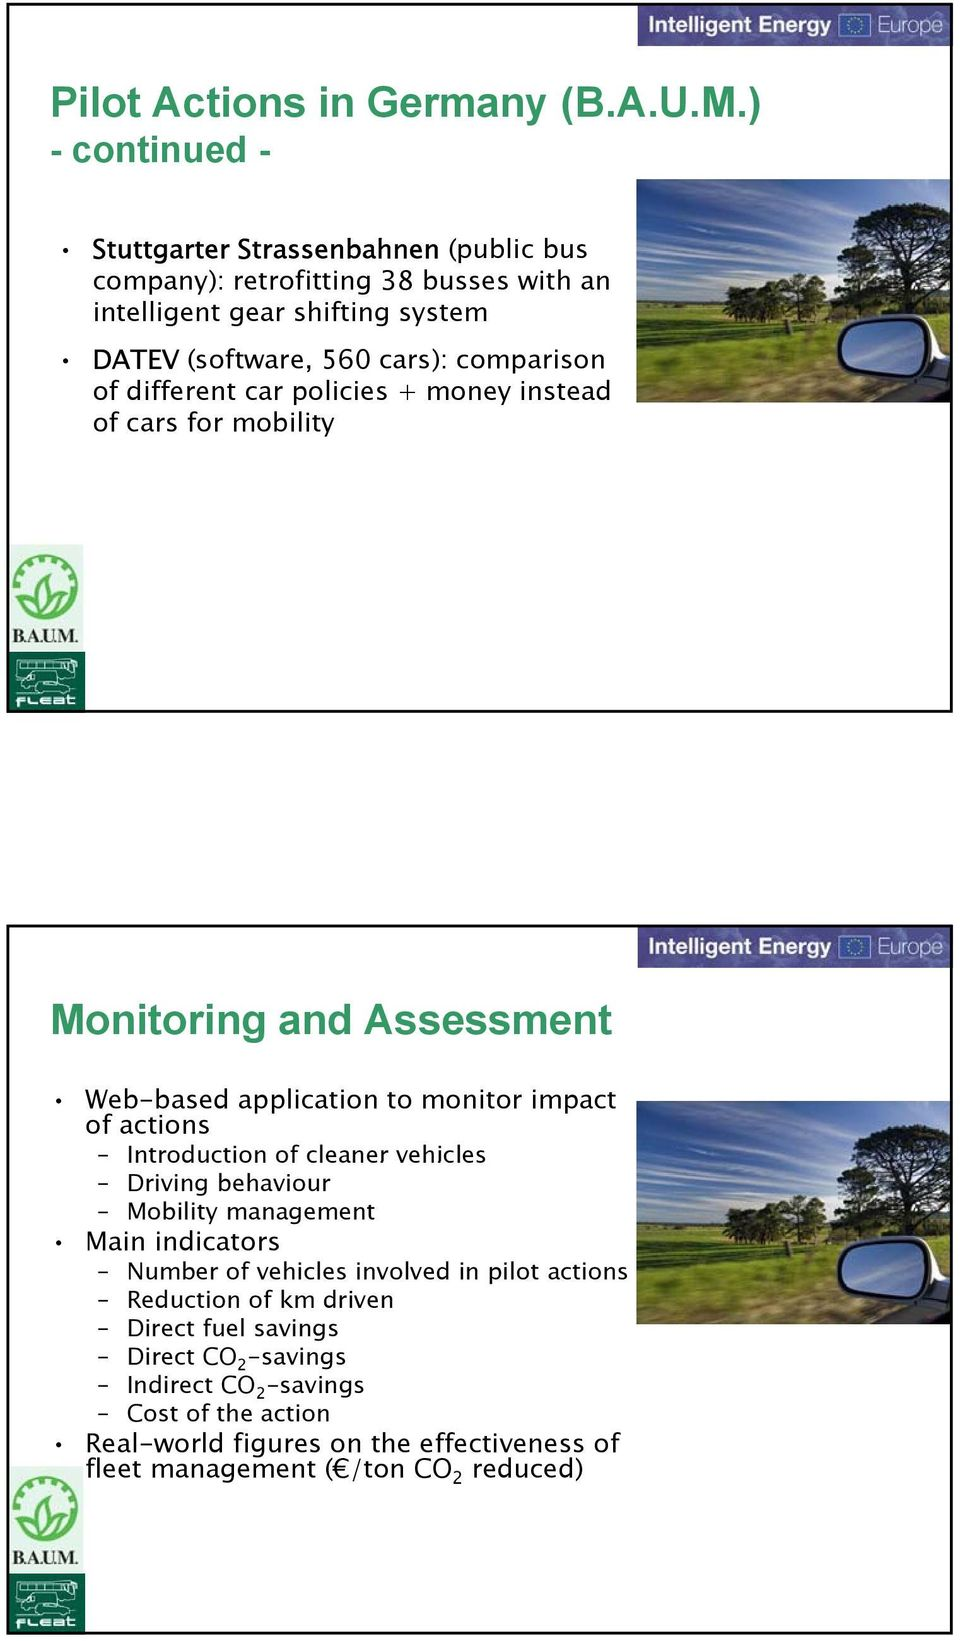 comparison of different car policies + money instead of cars for mobility Monitoring and Assessment Web-based application to monitor impact of actions Introduction